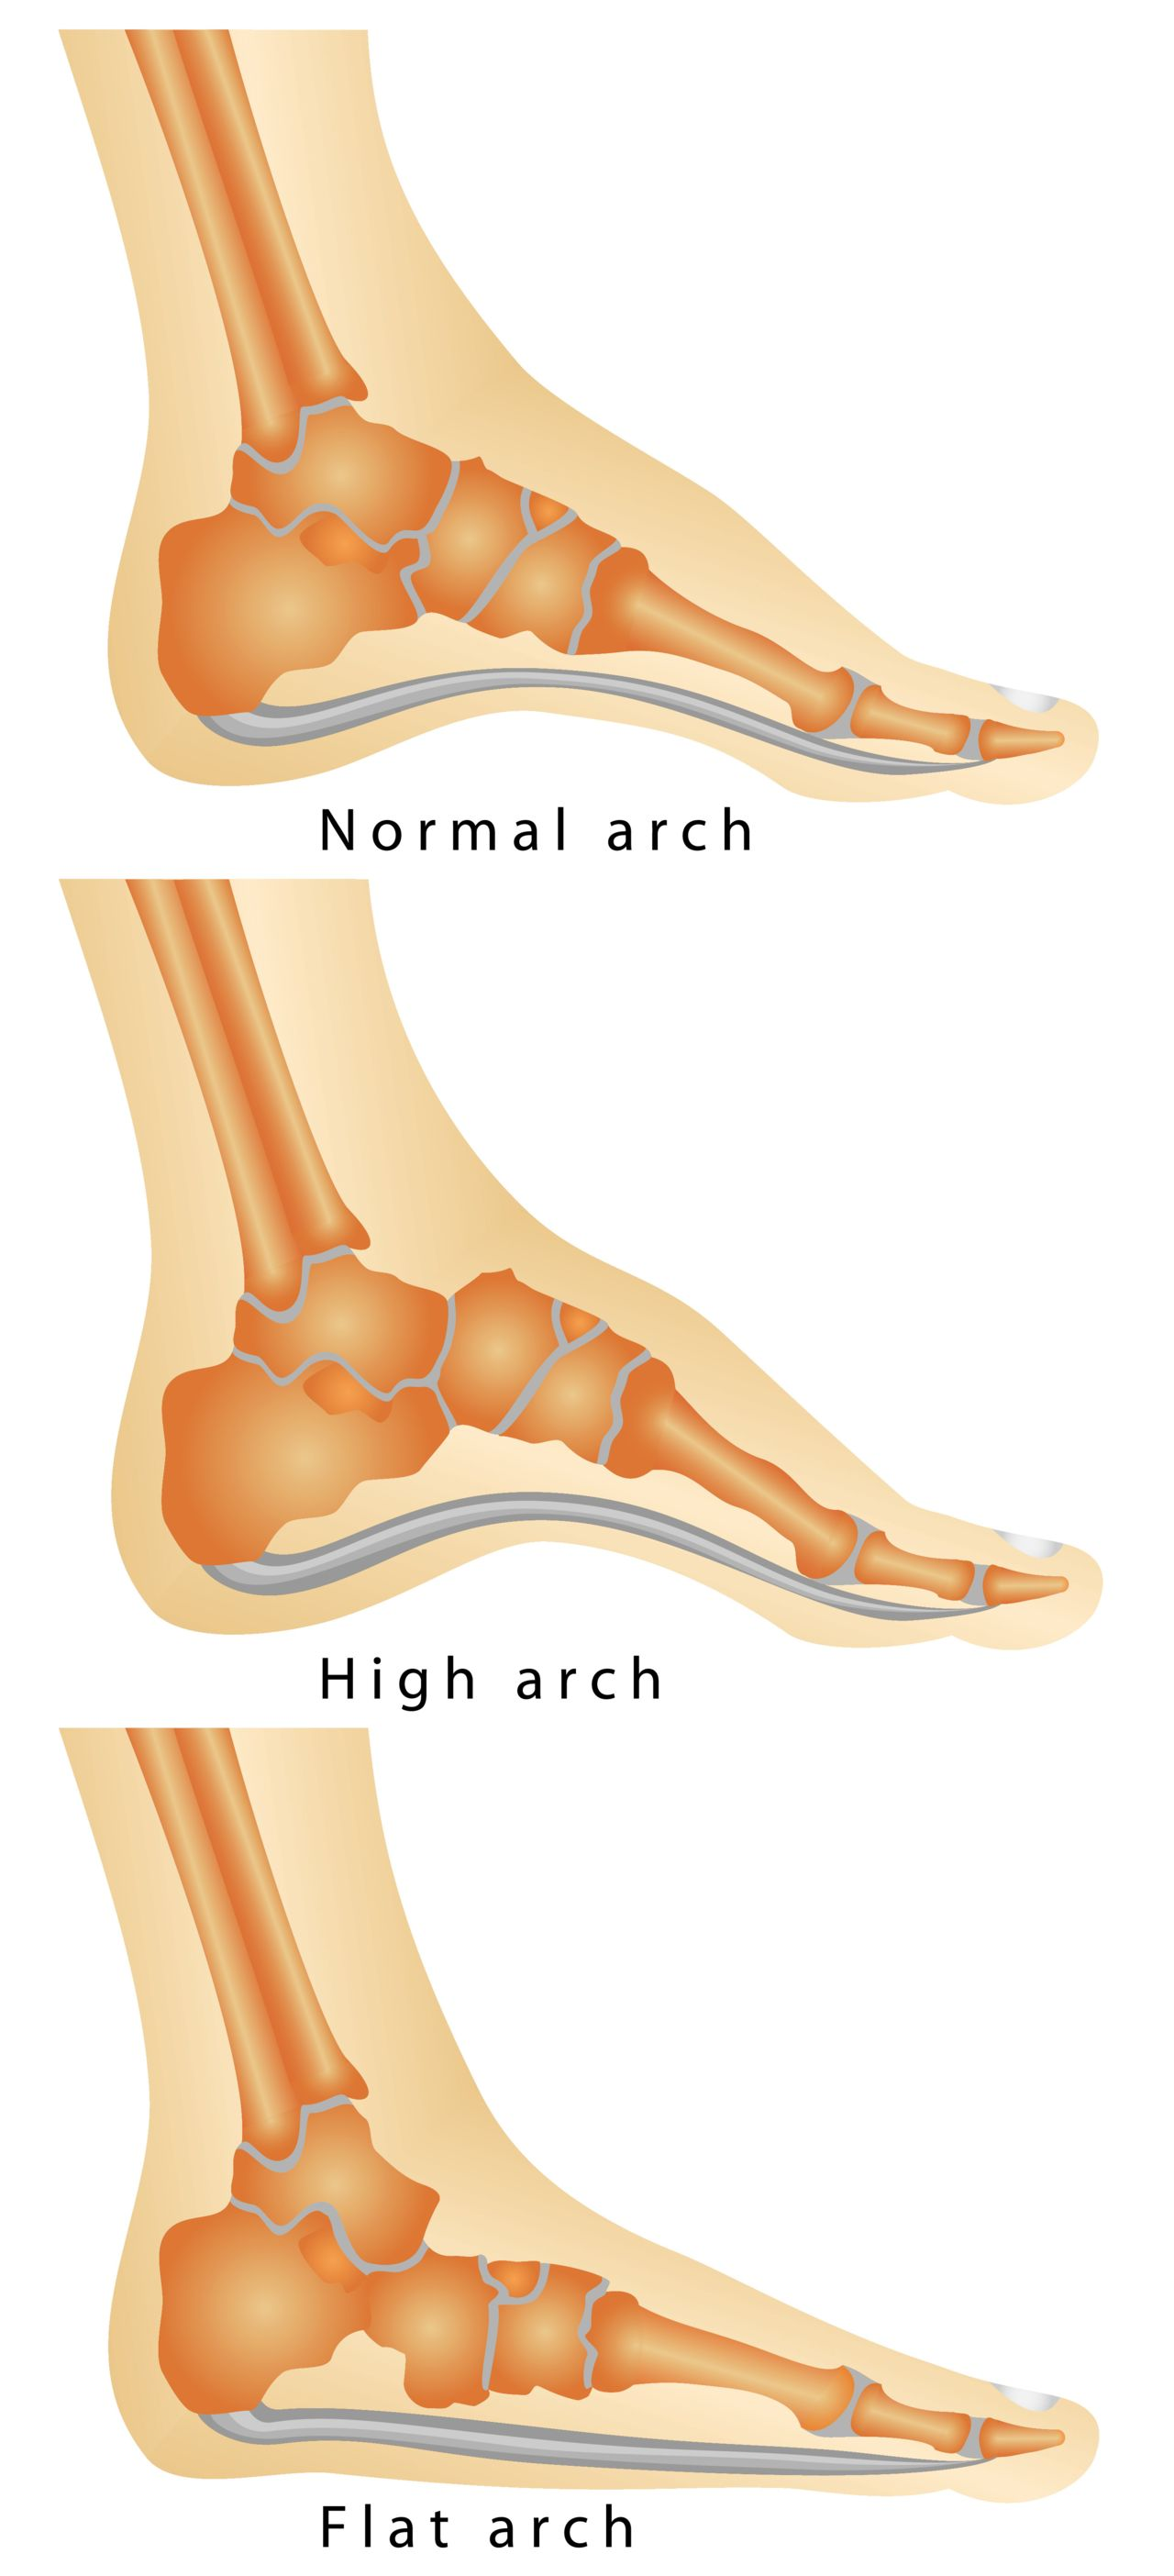 Cavus Foot | High Arches | Austin Foot And Ankle Specialists